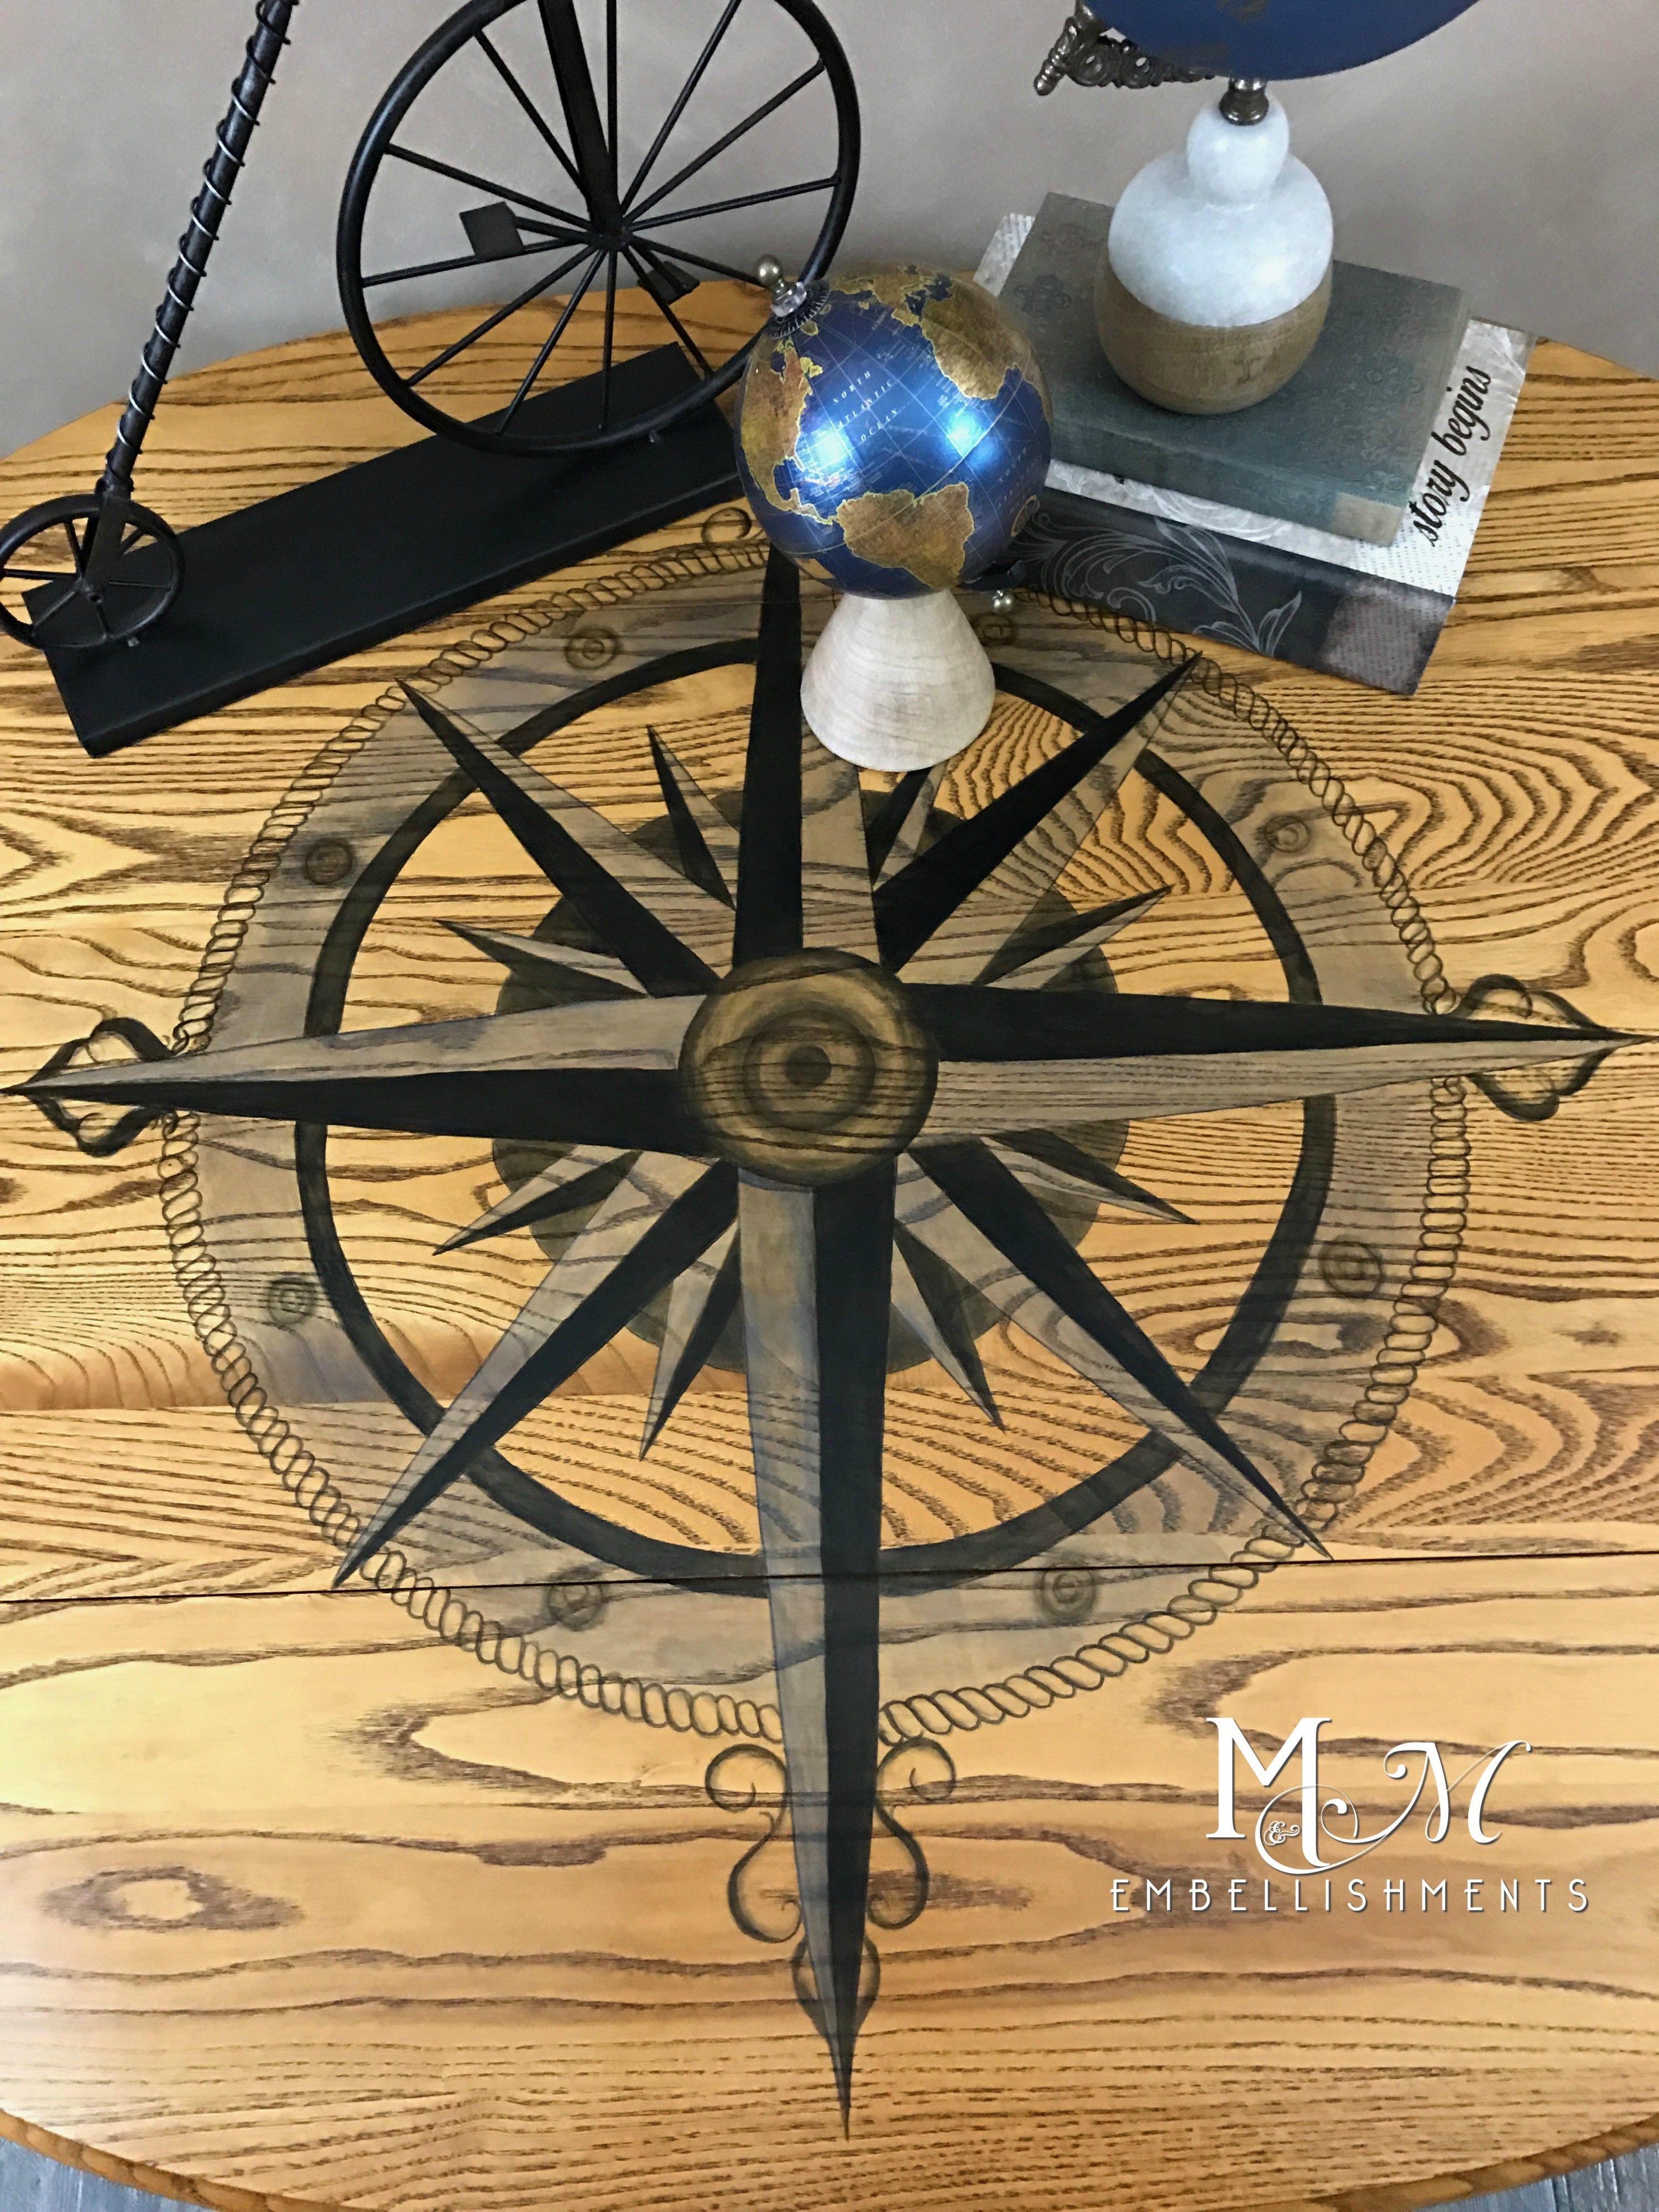 Boat Ceiling Fan Hand Stained Compass Rose Table Compass Rose Home Decor